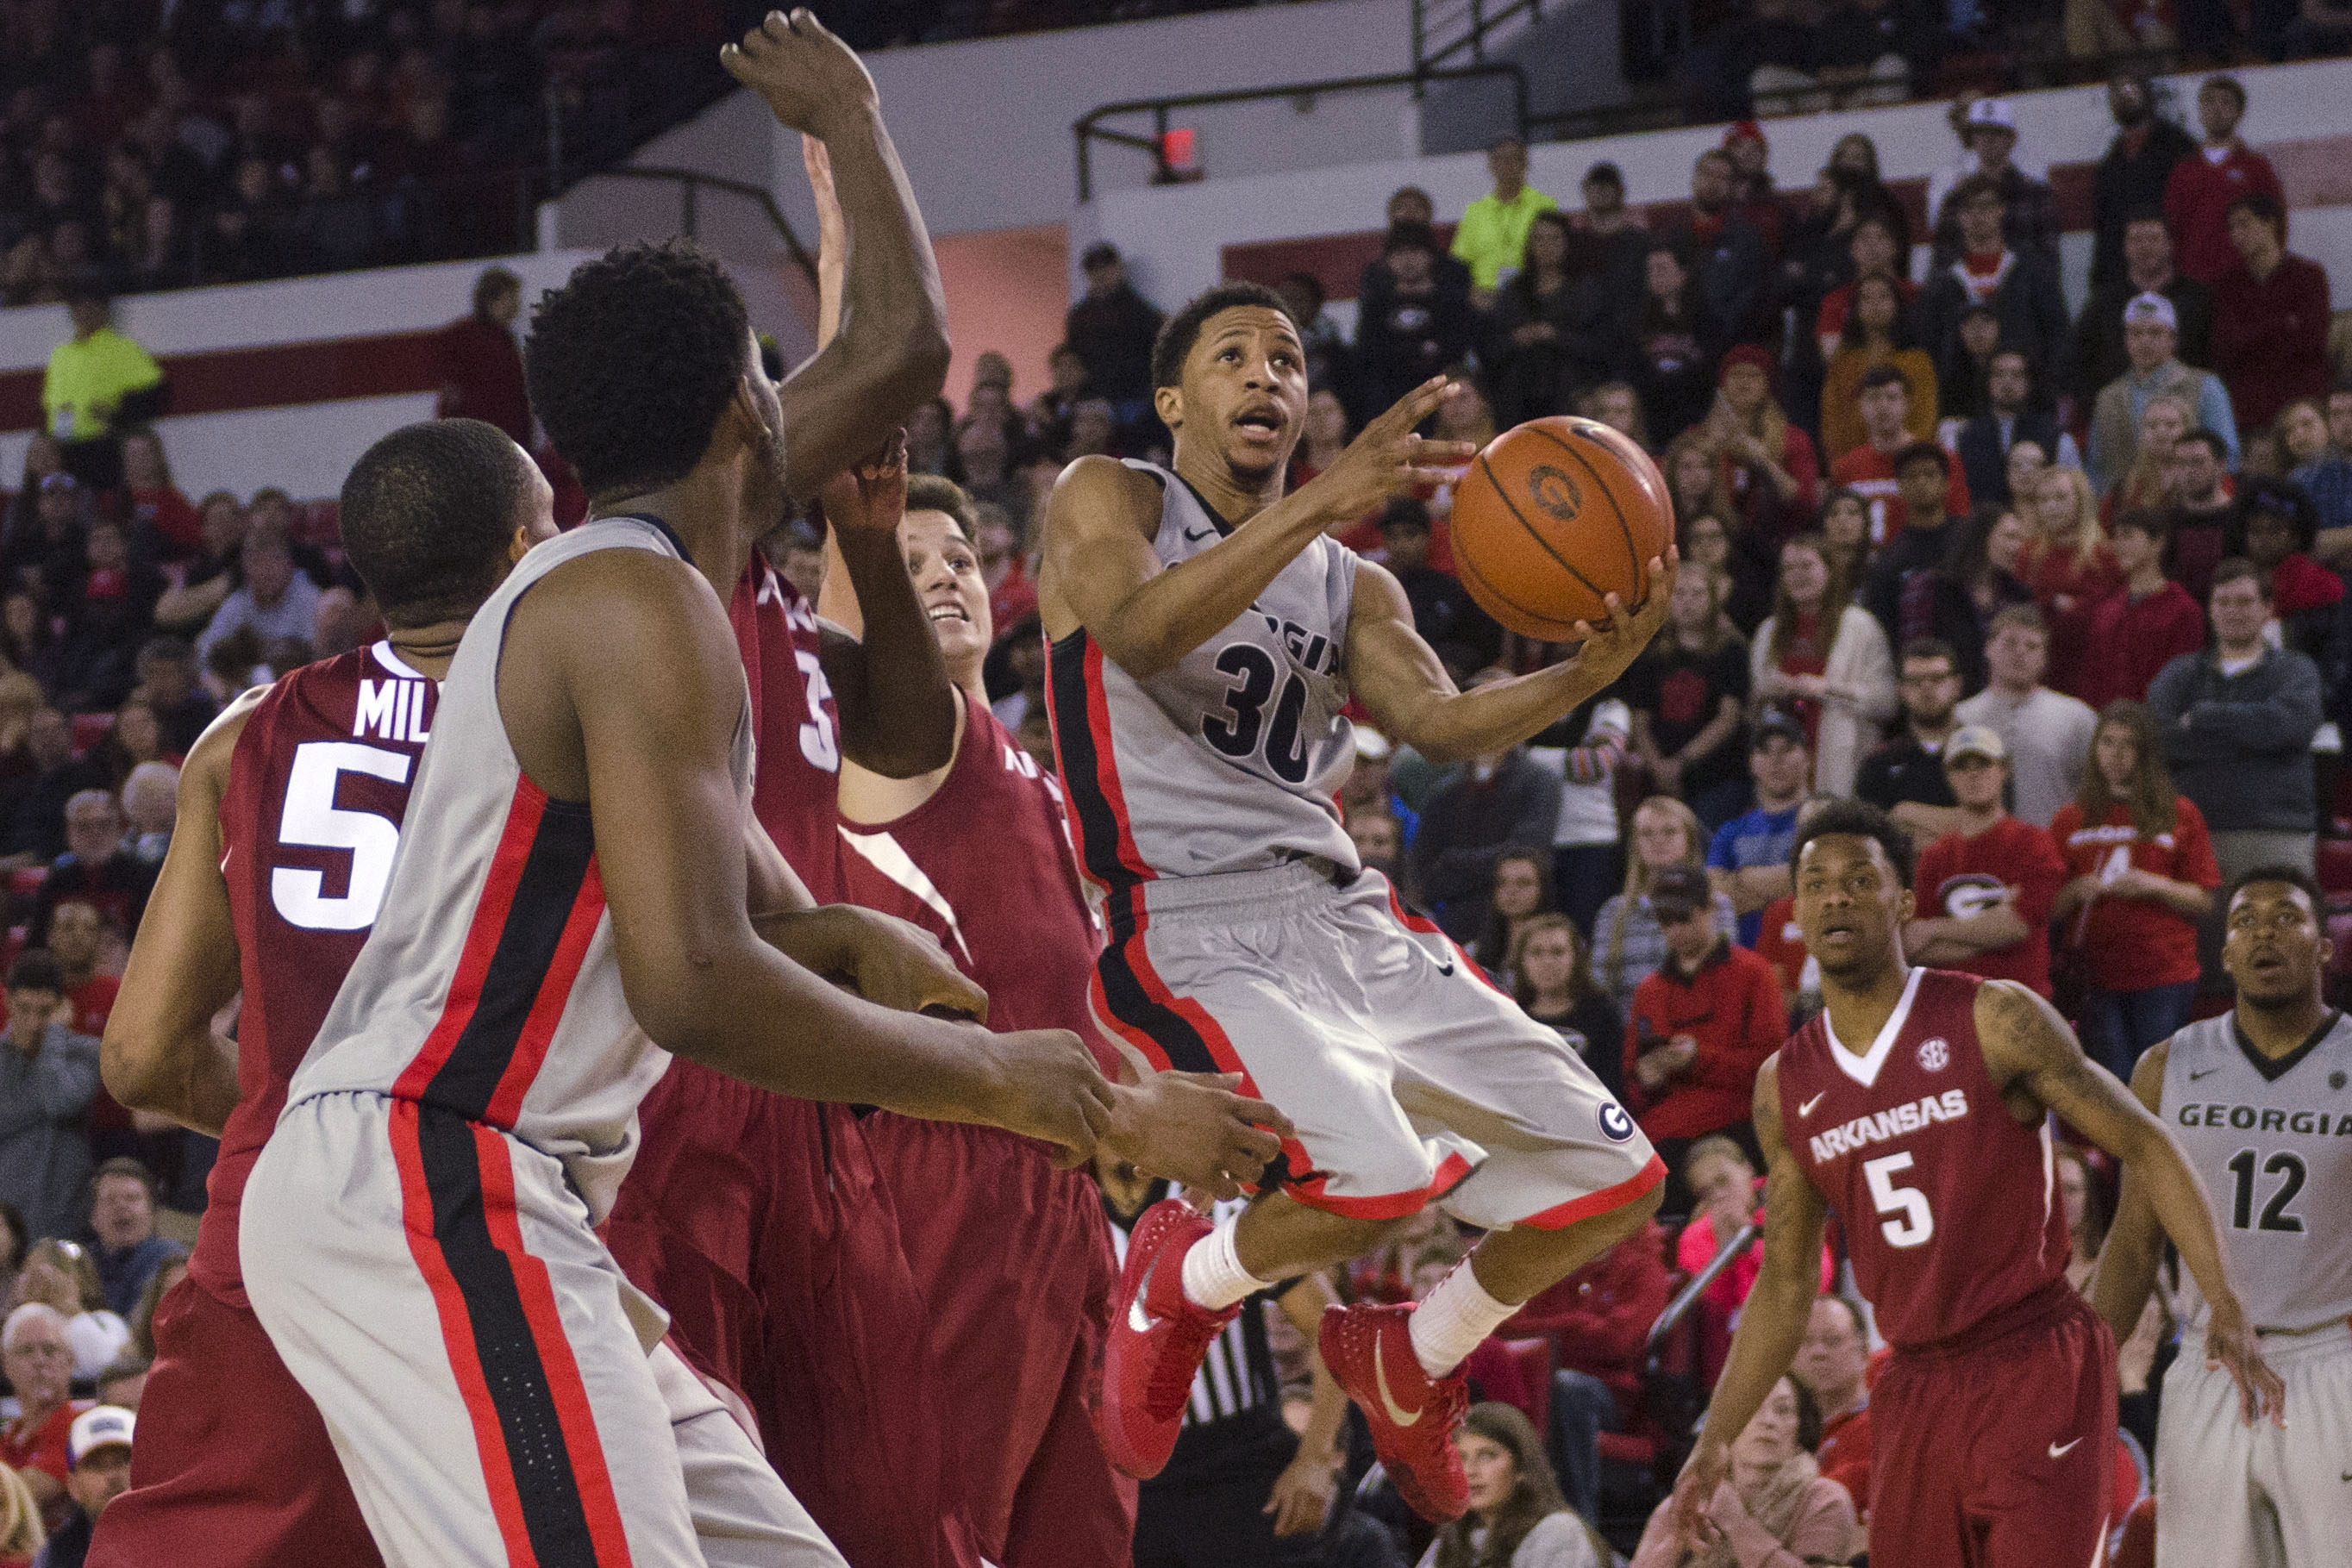 Georgia guard J.J. Frazier (30) drives to the basket during an NCAA college basketball game against Arkansas on Saturday, Jan. 23, 2016, in Athens, Ga. (Taylor Craig Sutton/Athens Banner-Herald via AP)